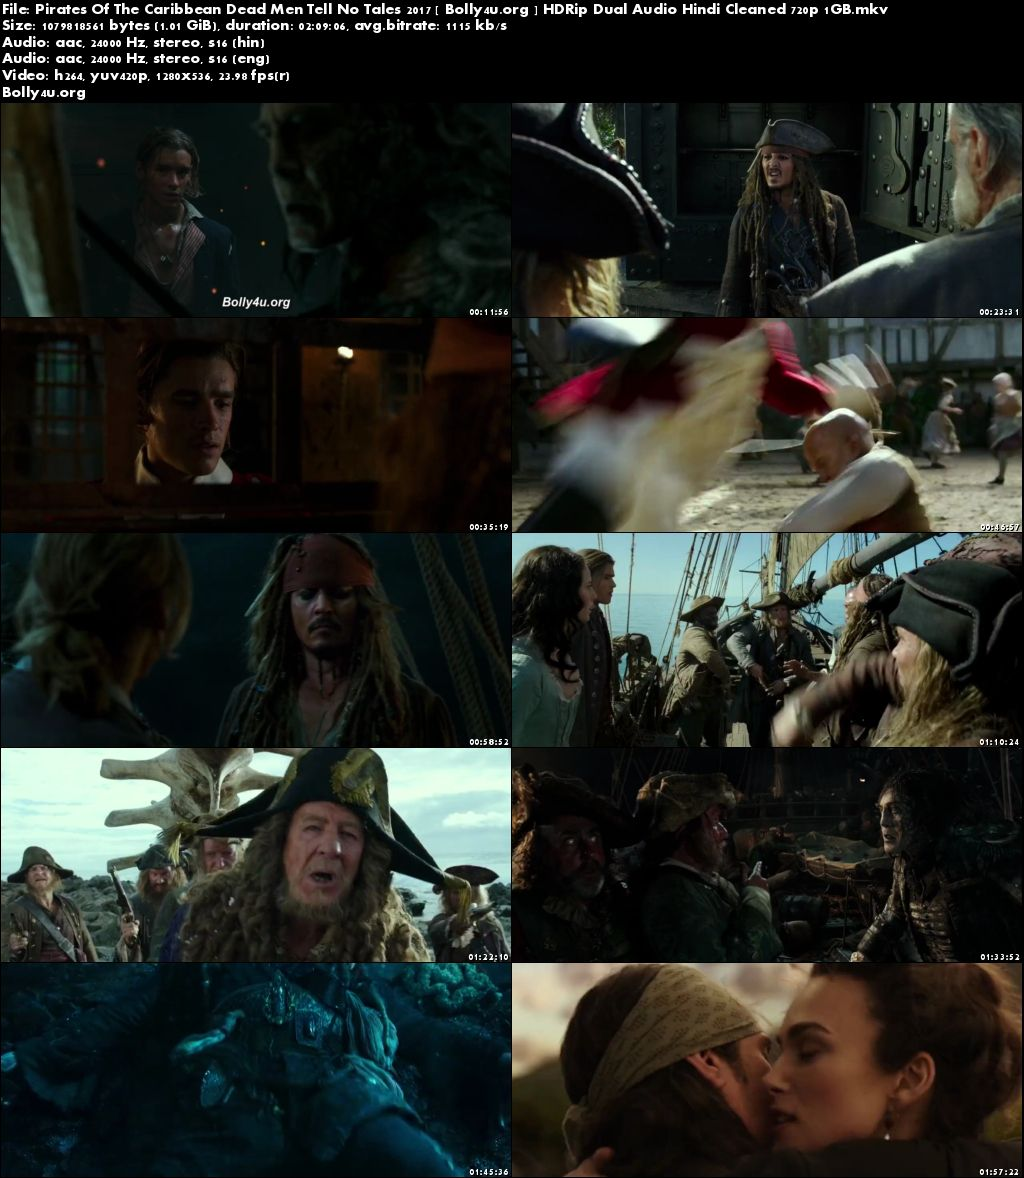 Pirates Of The Caribbean Dead Men Tell No Tales 2017 HDRip 400Mb Hindi Dual Audio 480p Download